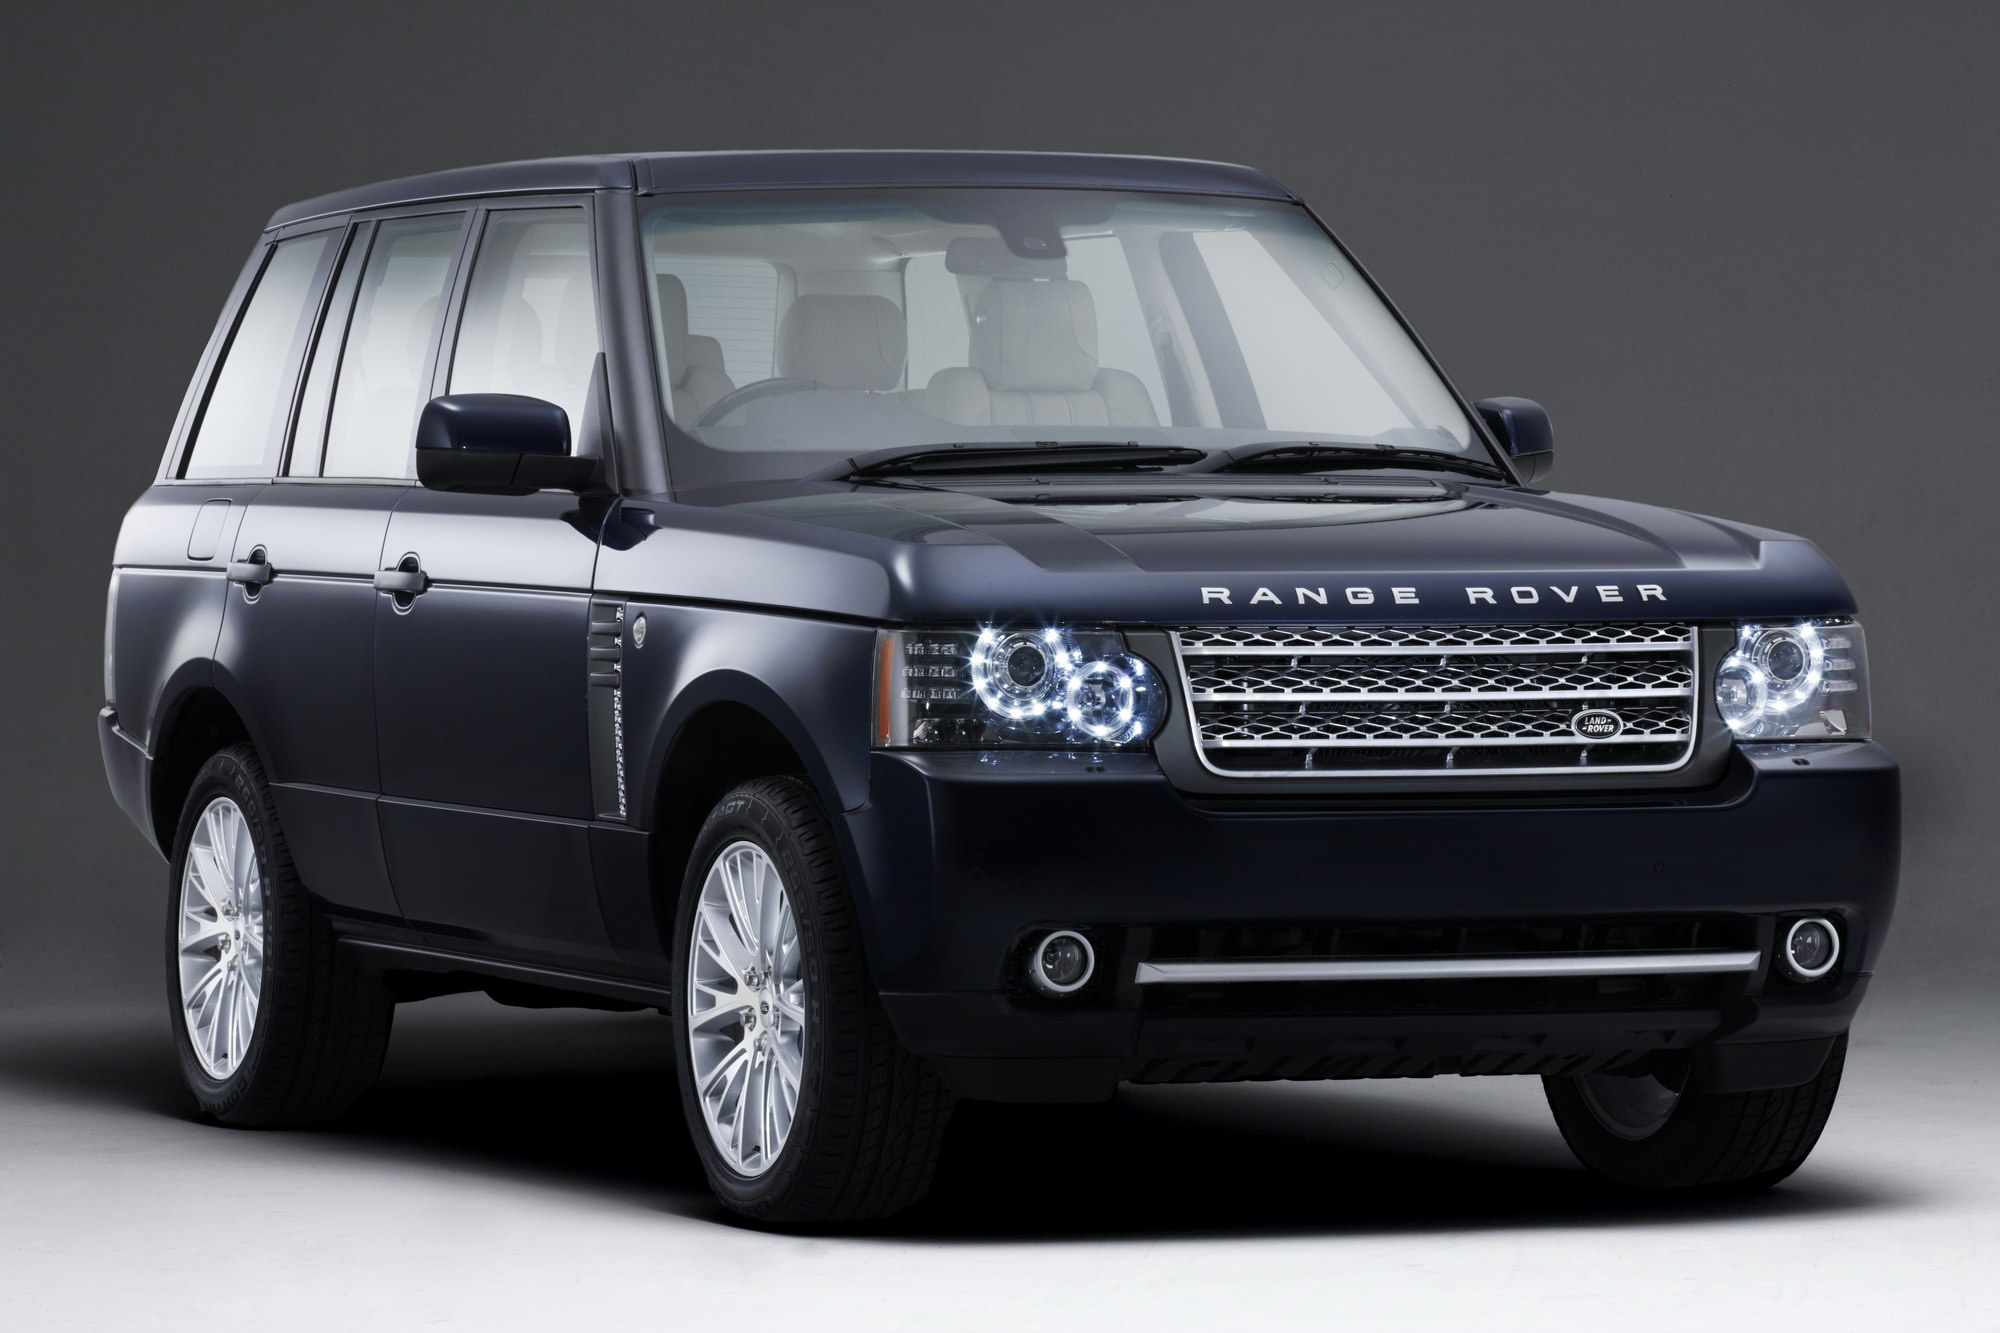 Range Rover TDV8 Not ing To USA News Gallery Top Speed